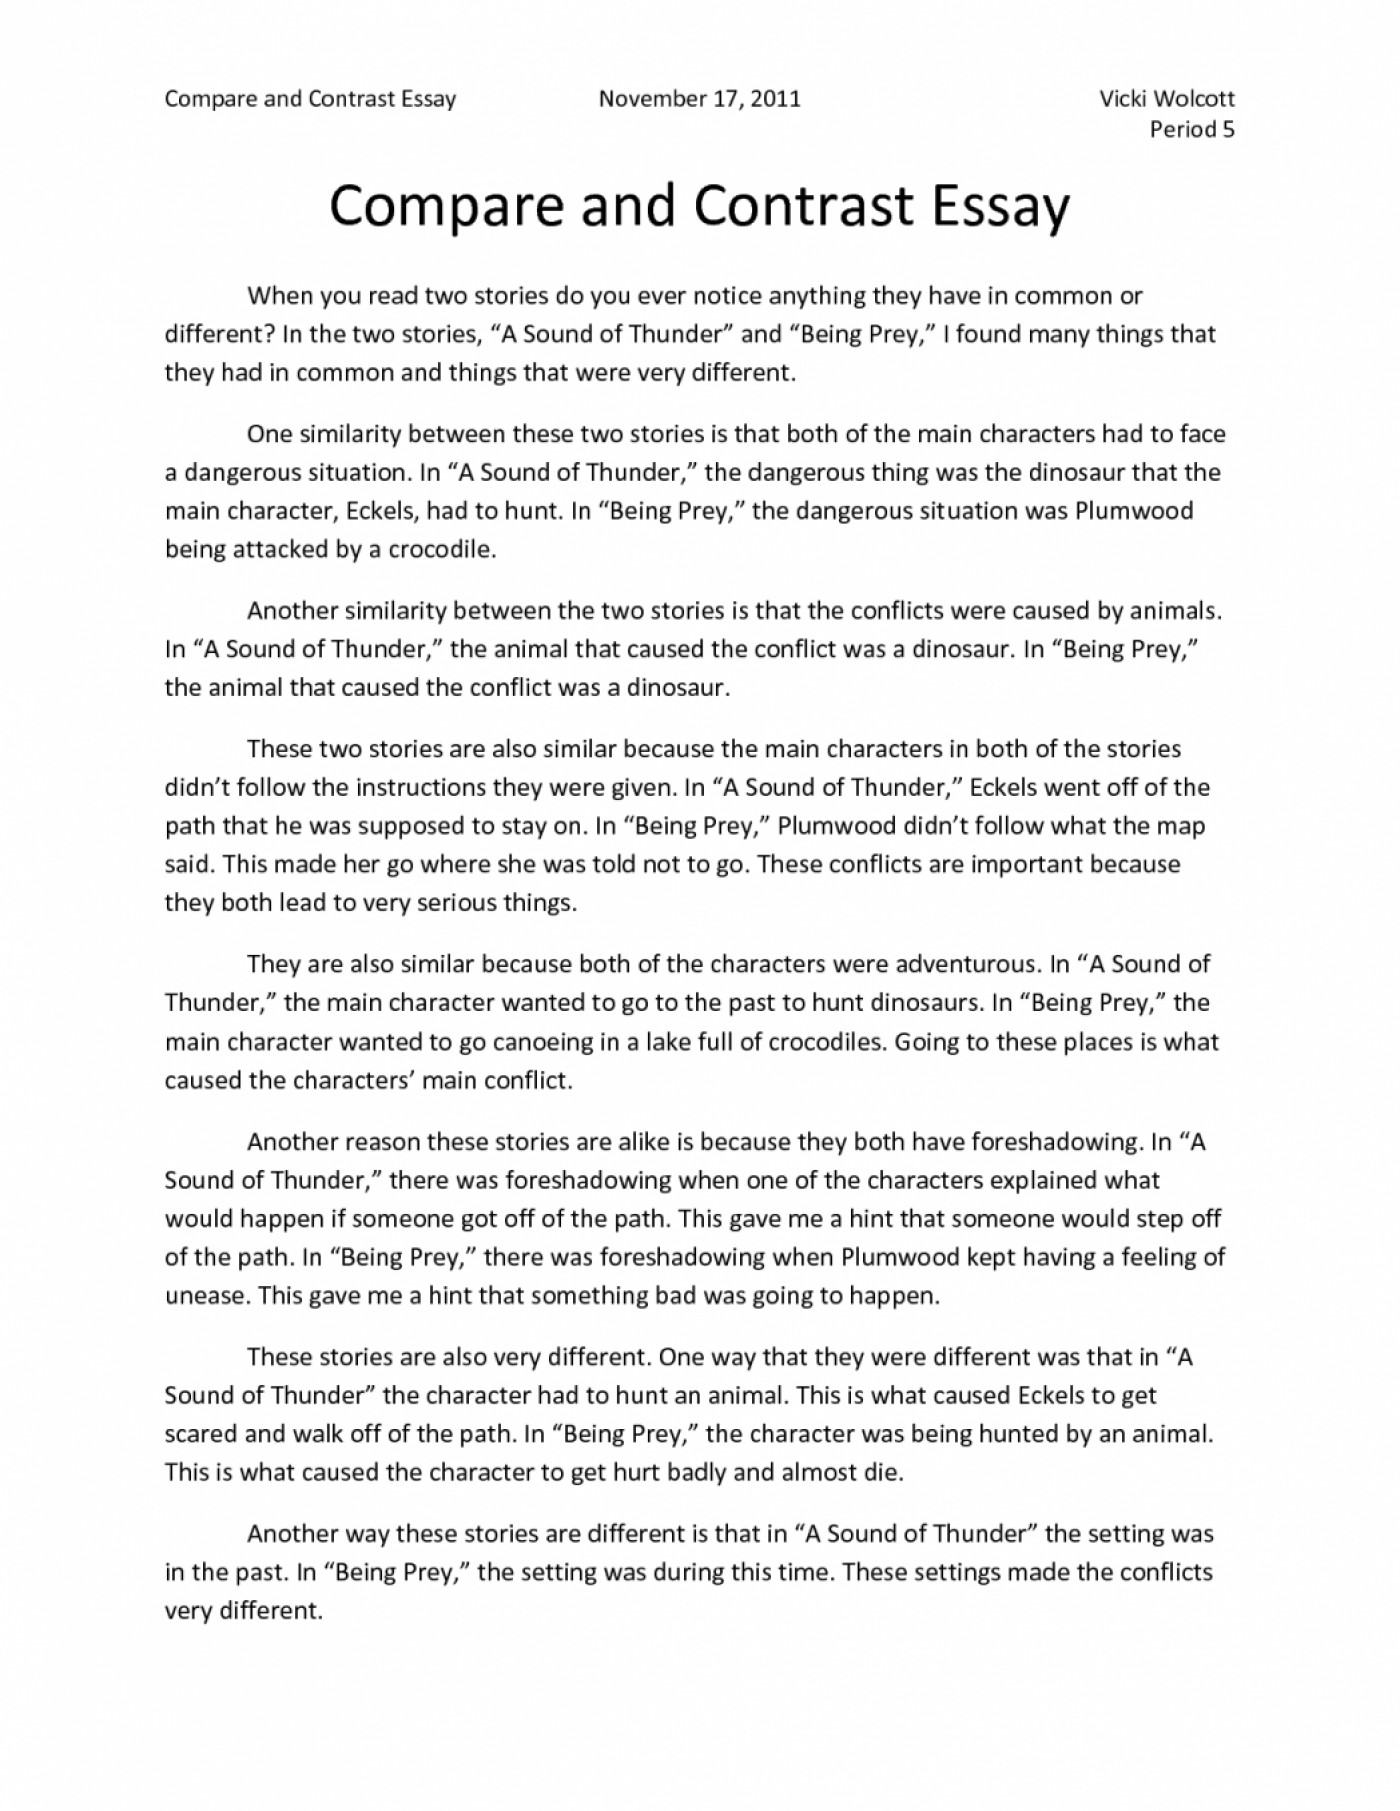 005 Contrast Essay Topics Example Good Compare And For College Easy Argumentative Students Astounding Examples High School Middle 1400